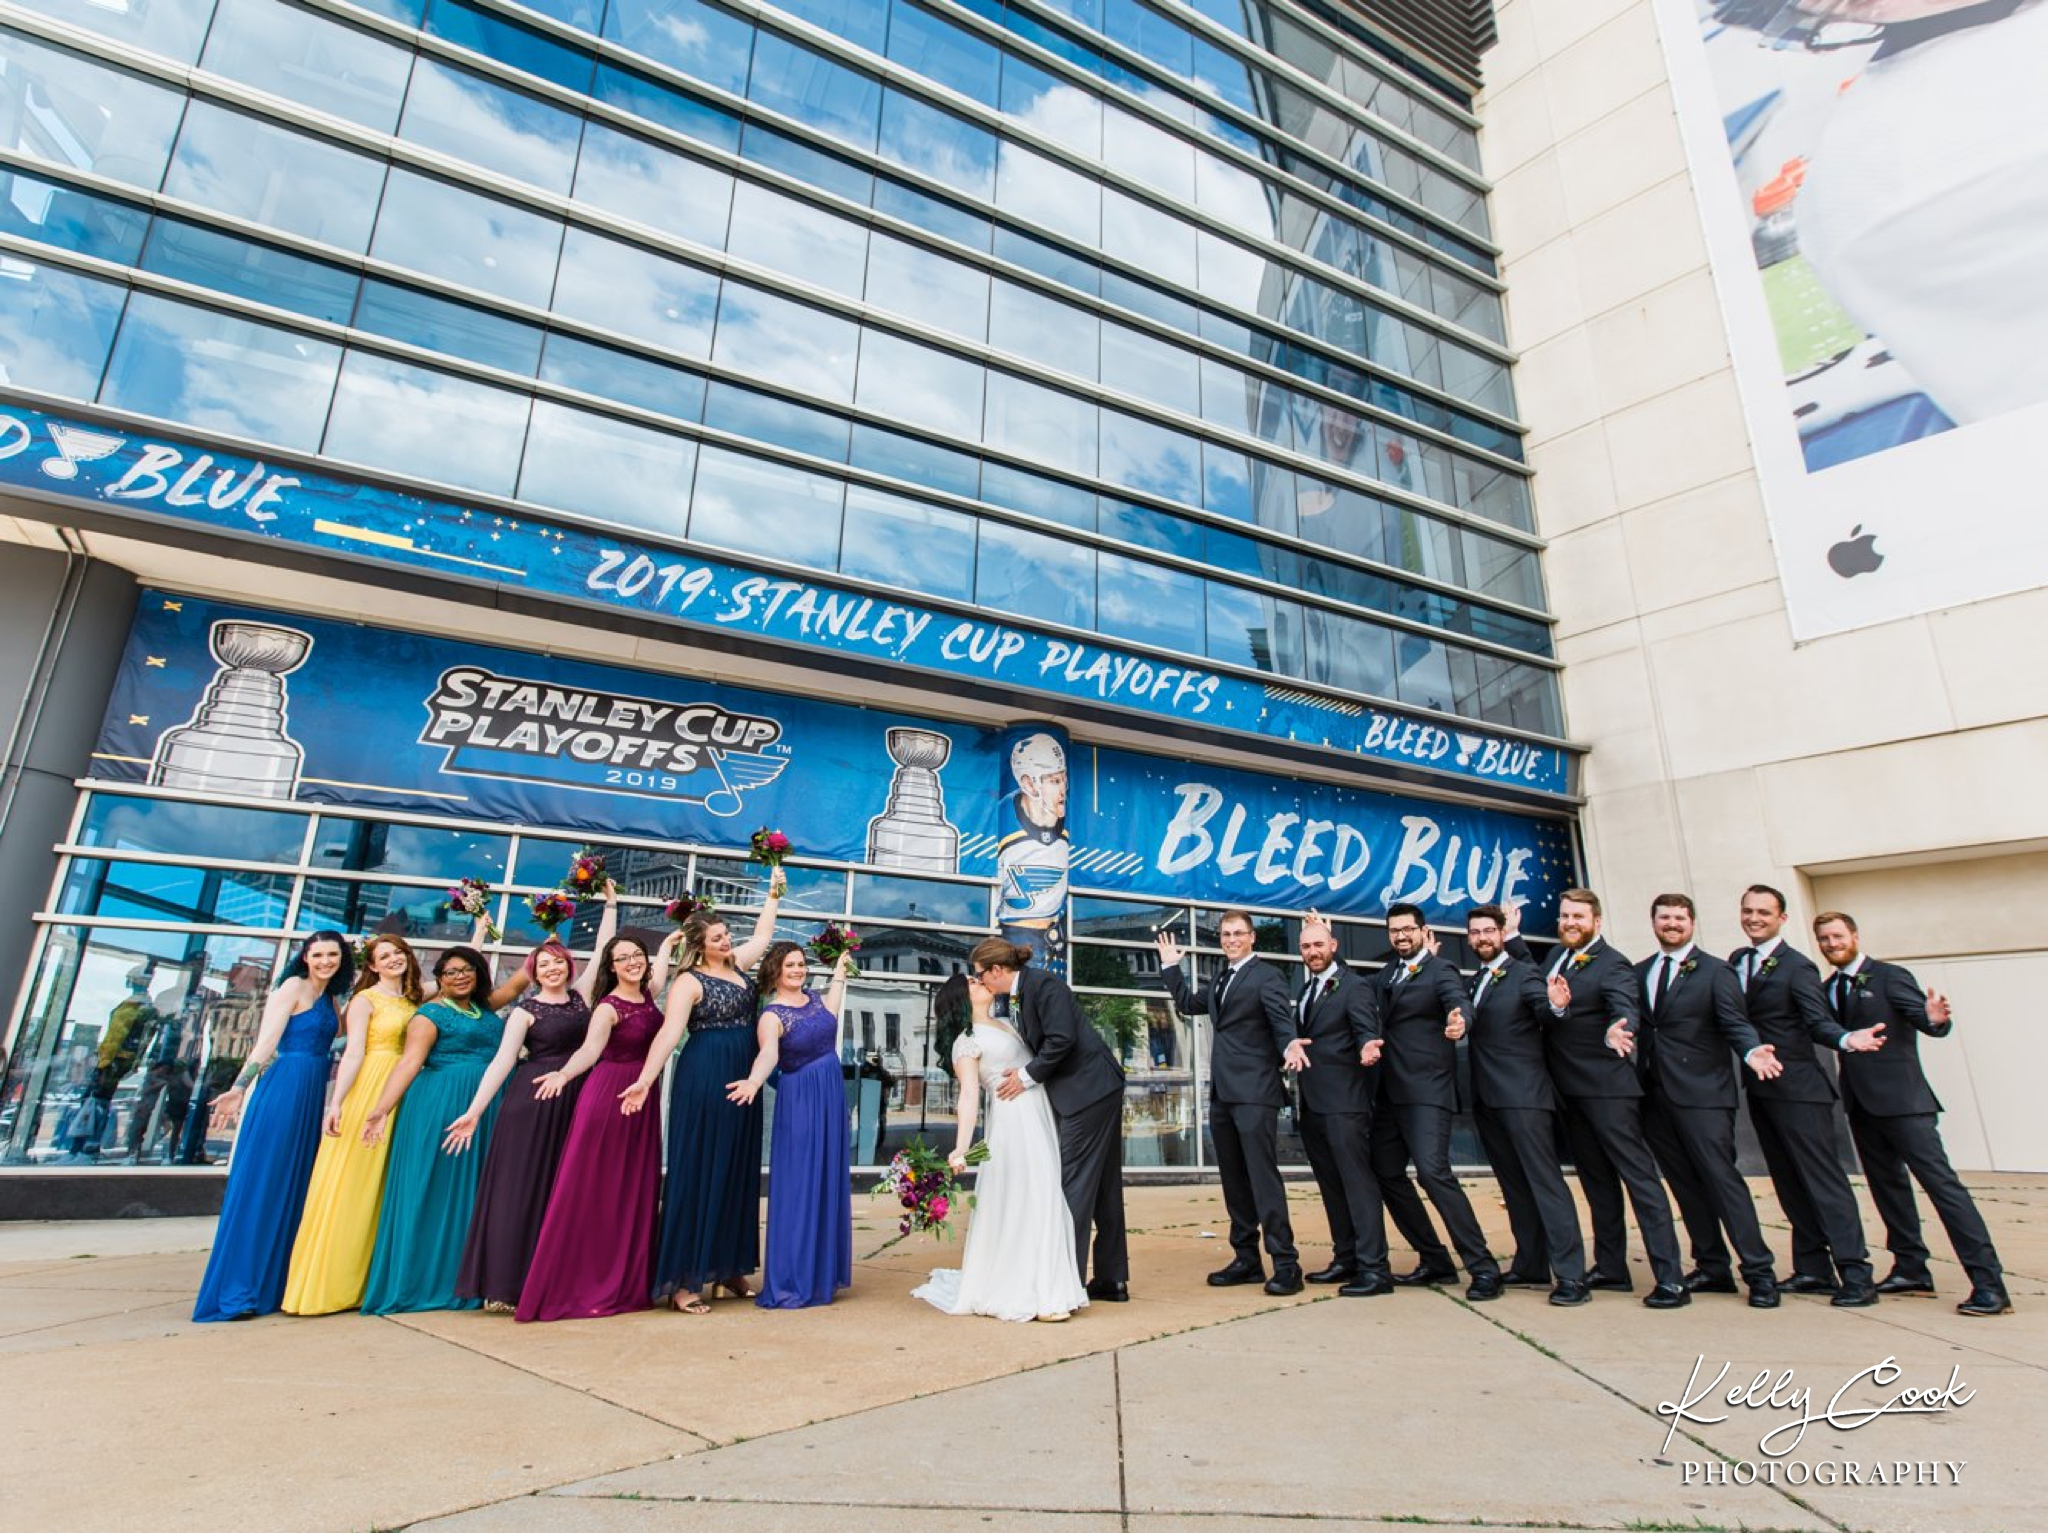 St. Louis Blues wedding photo of a wedding party cheering